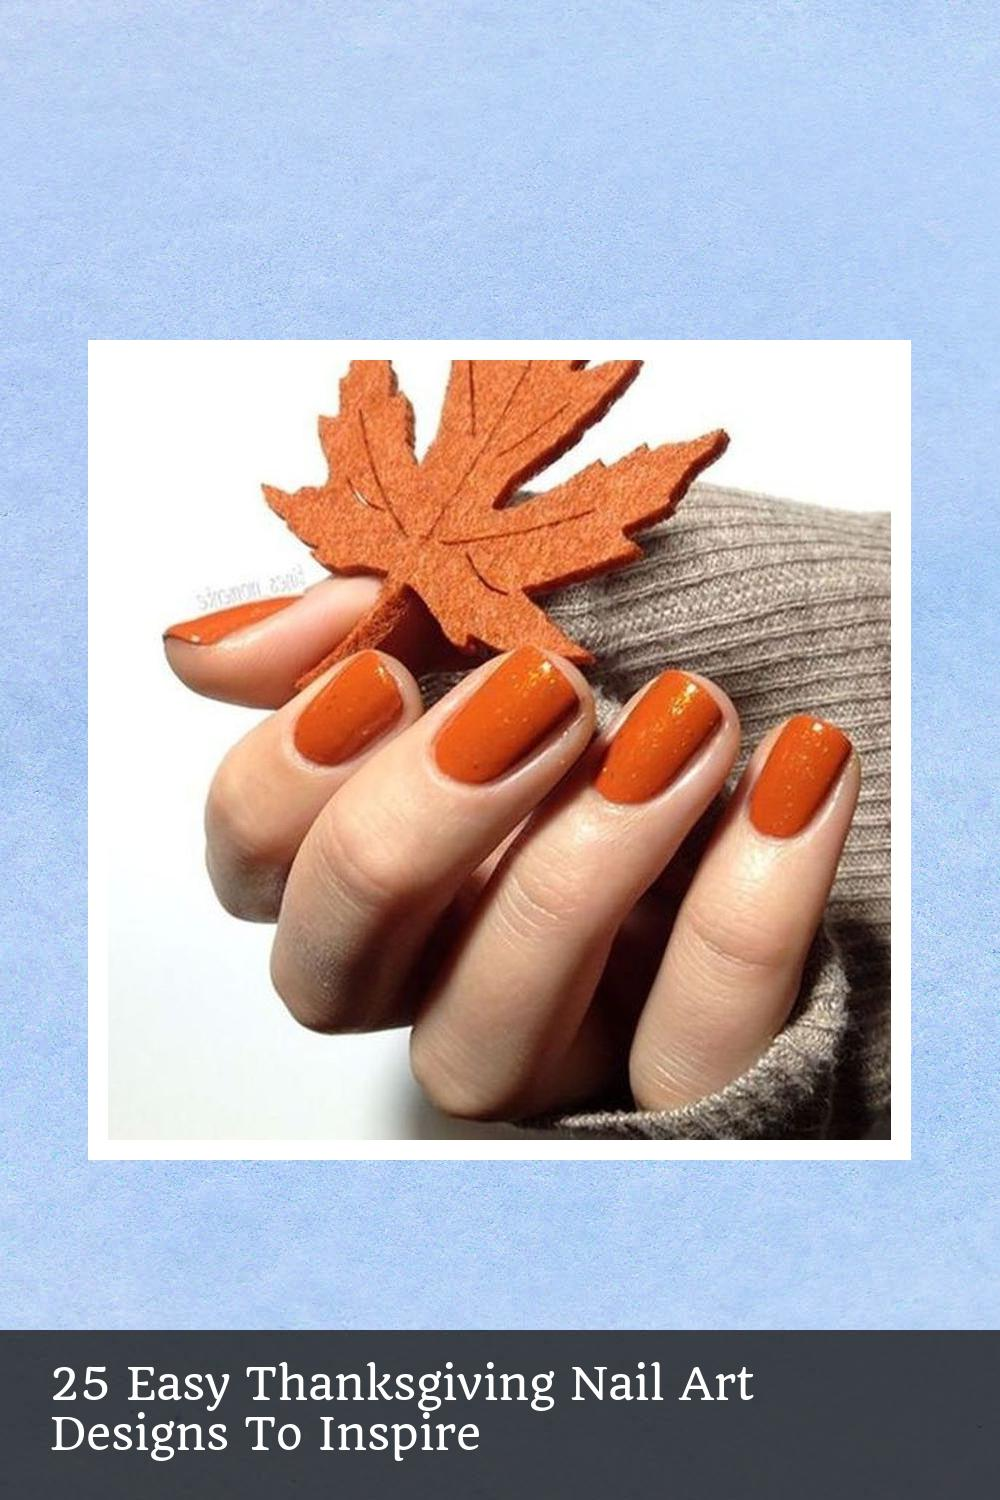 25 Easy Thanksgiving Nail Art Designs To Inspire 19